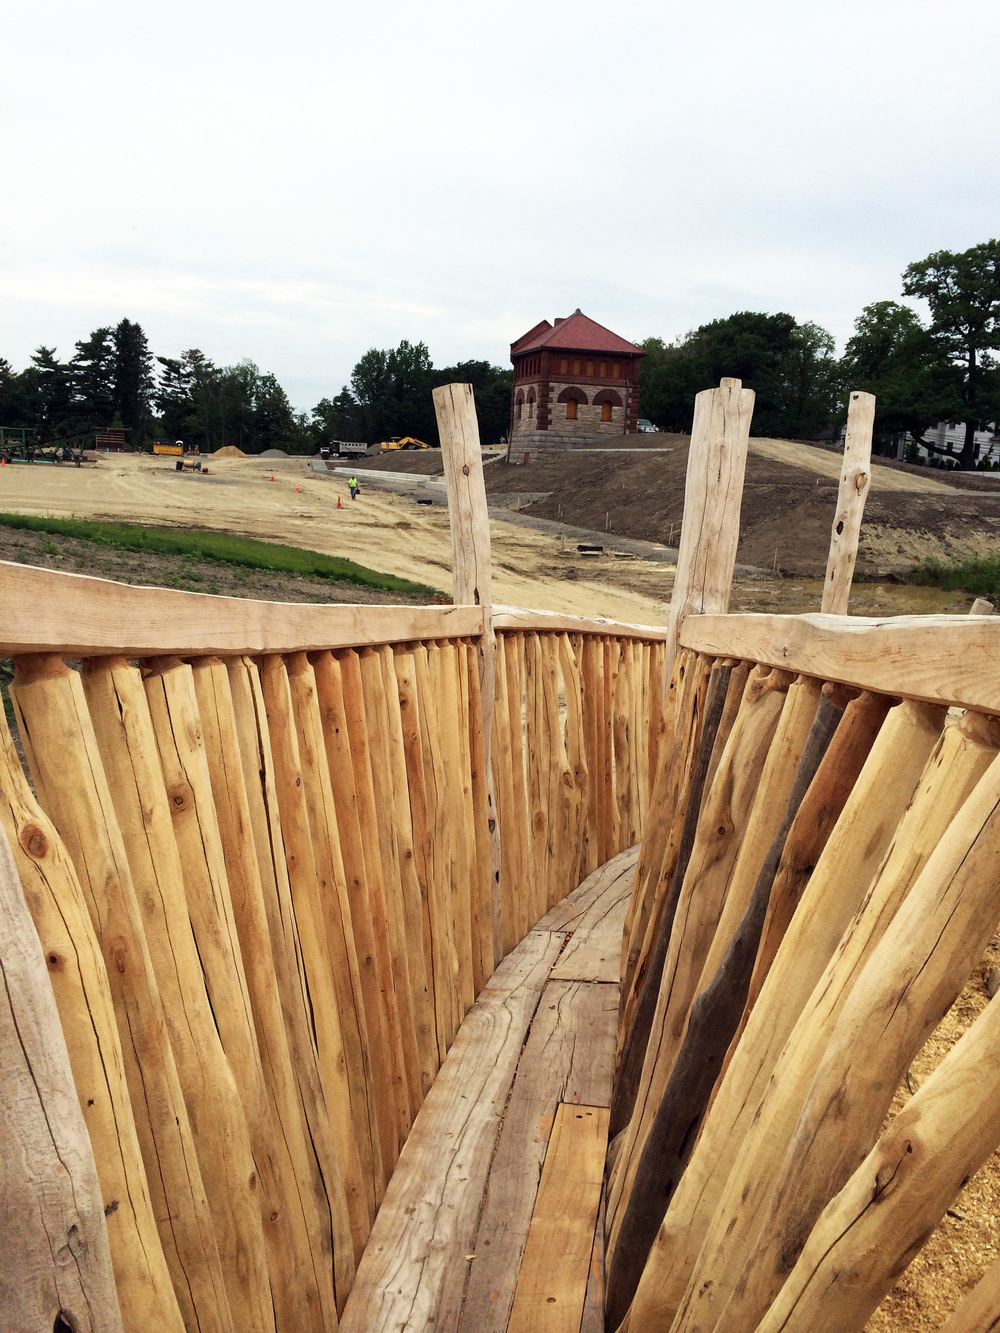 A view towards the Gate House from Mitch Ryerson's play structure.